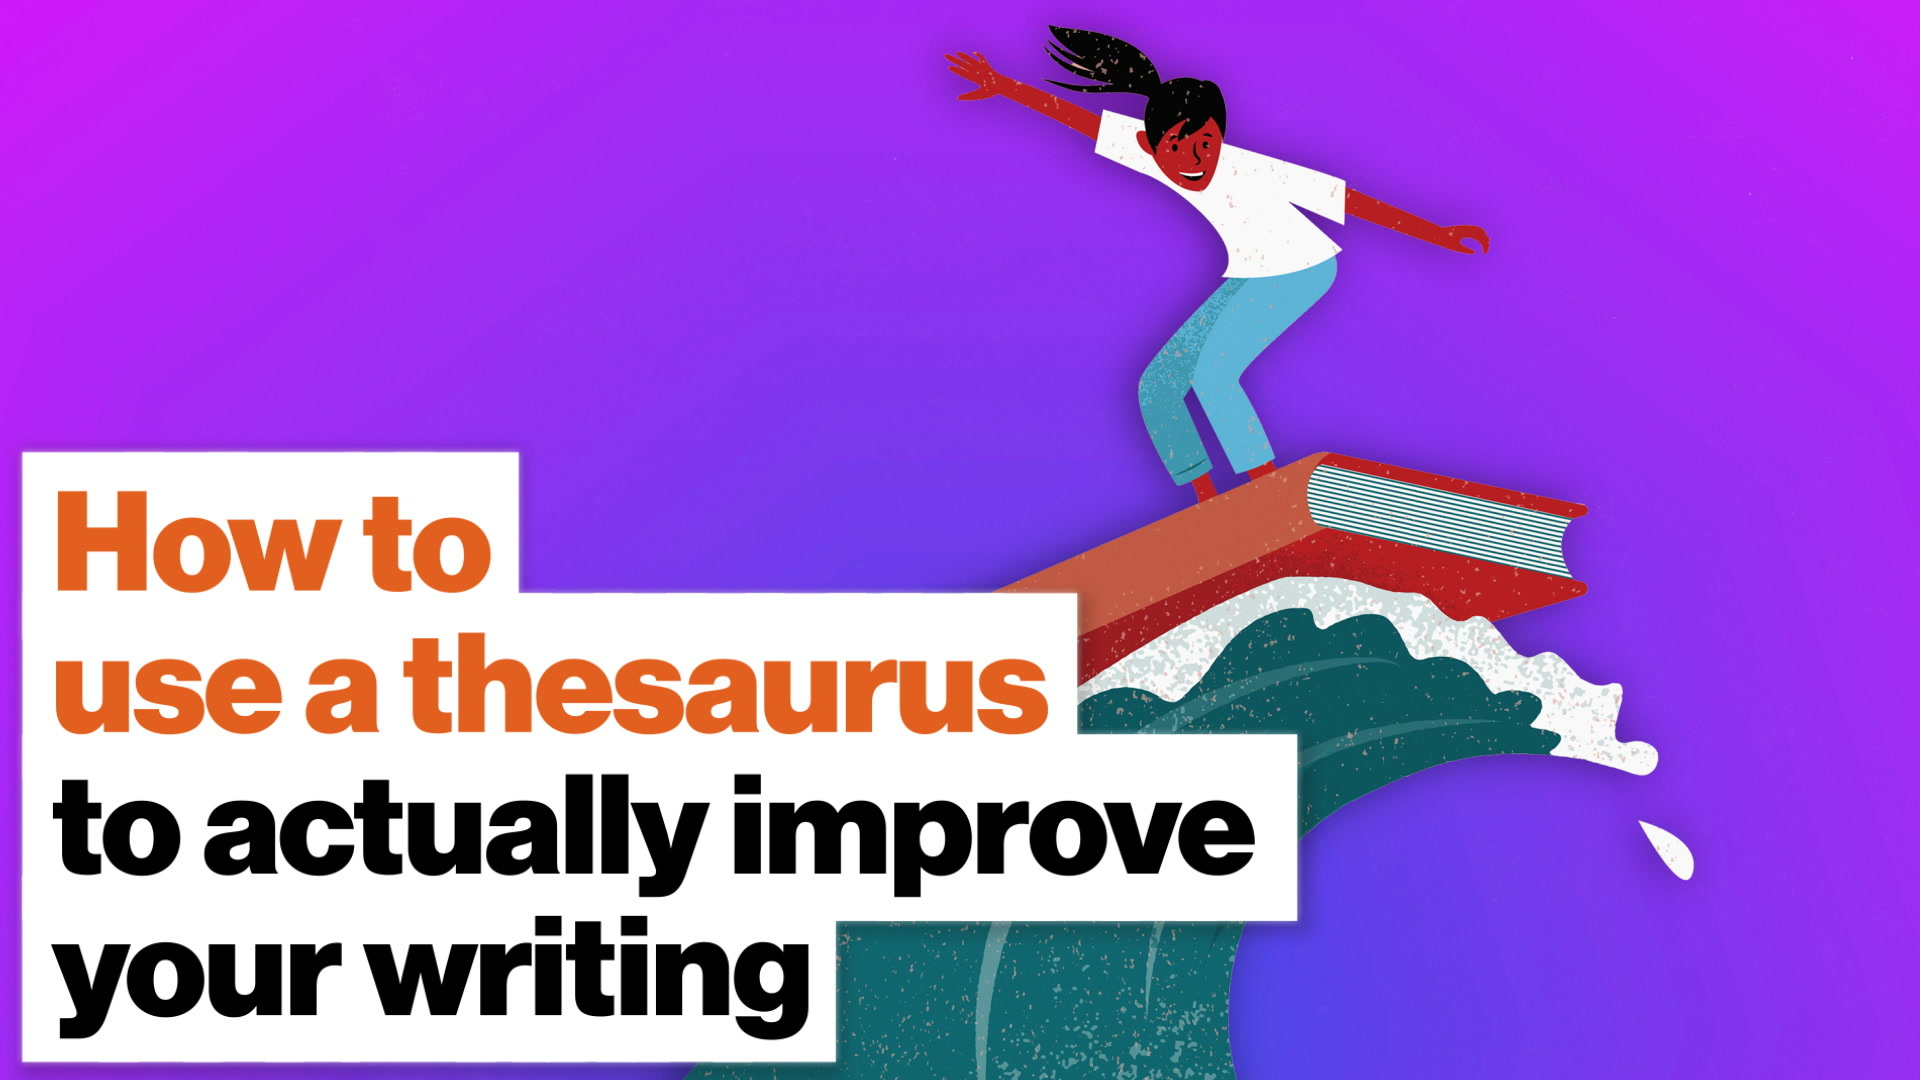 How to use a thesaurus to actually improve your writing